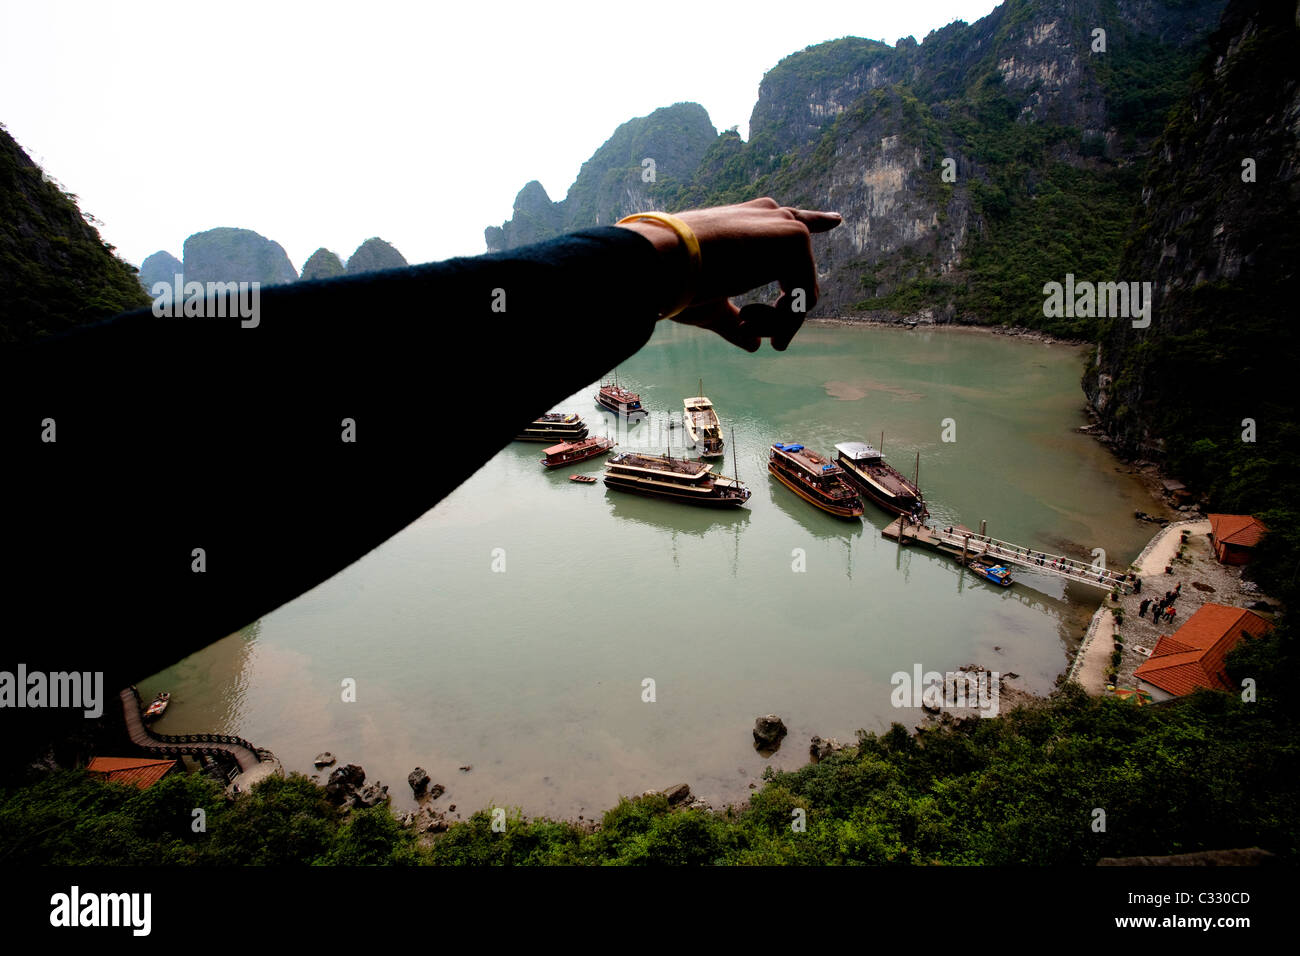 A climber points to limestone cliffs in Halong Bay, Vietnam.  Halong Bay has thousands of climbable limestone formations - Stock Image